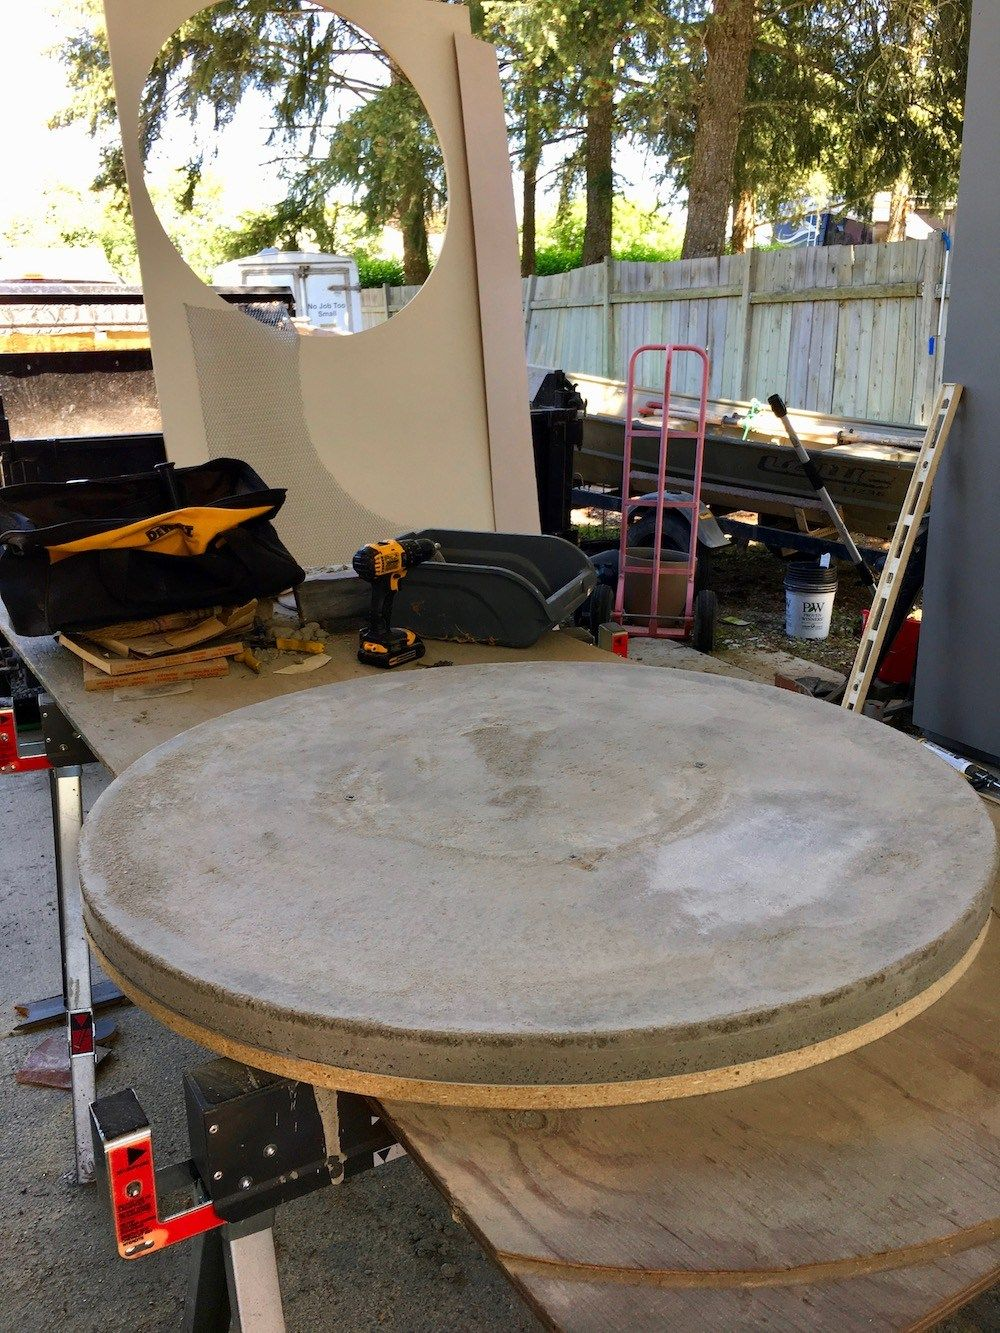 How To Make A Round Concrete Table Top Diy Patio Table Concrete Dining Table Round Patio Table